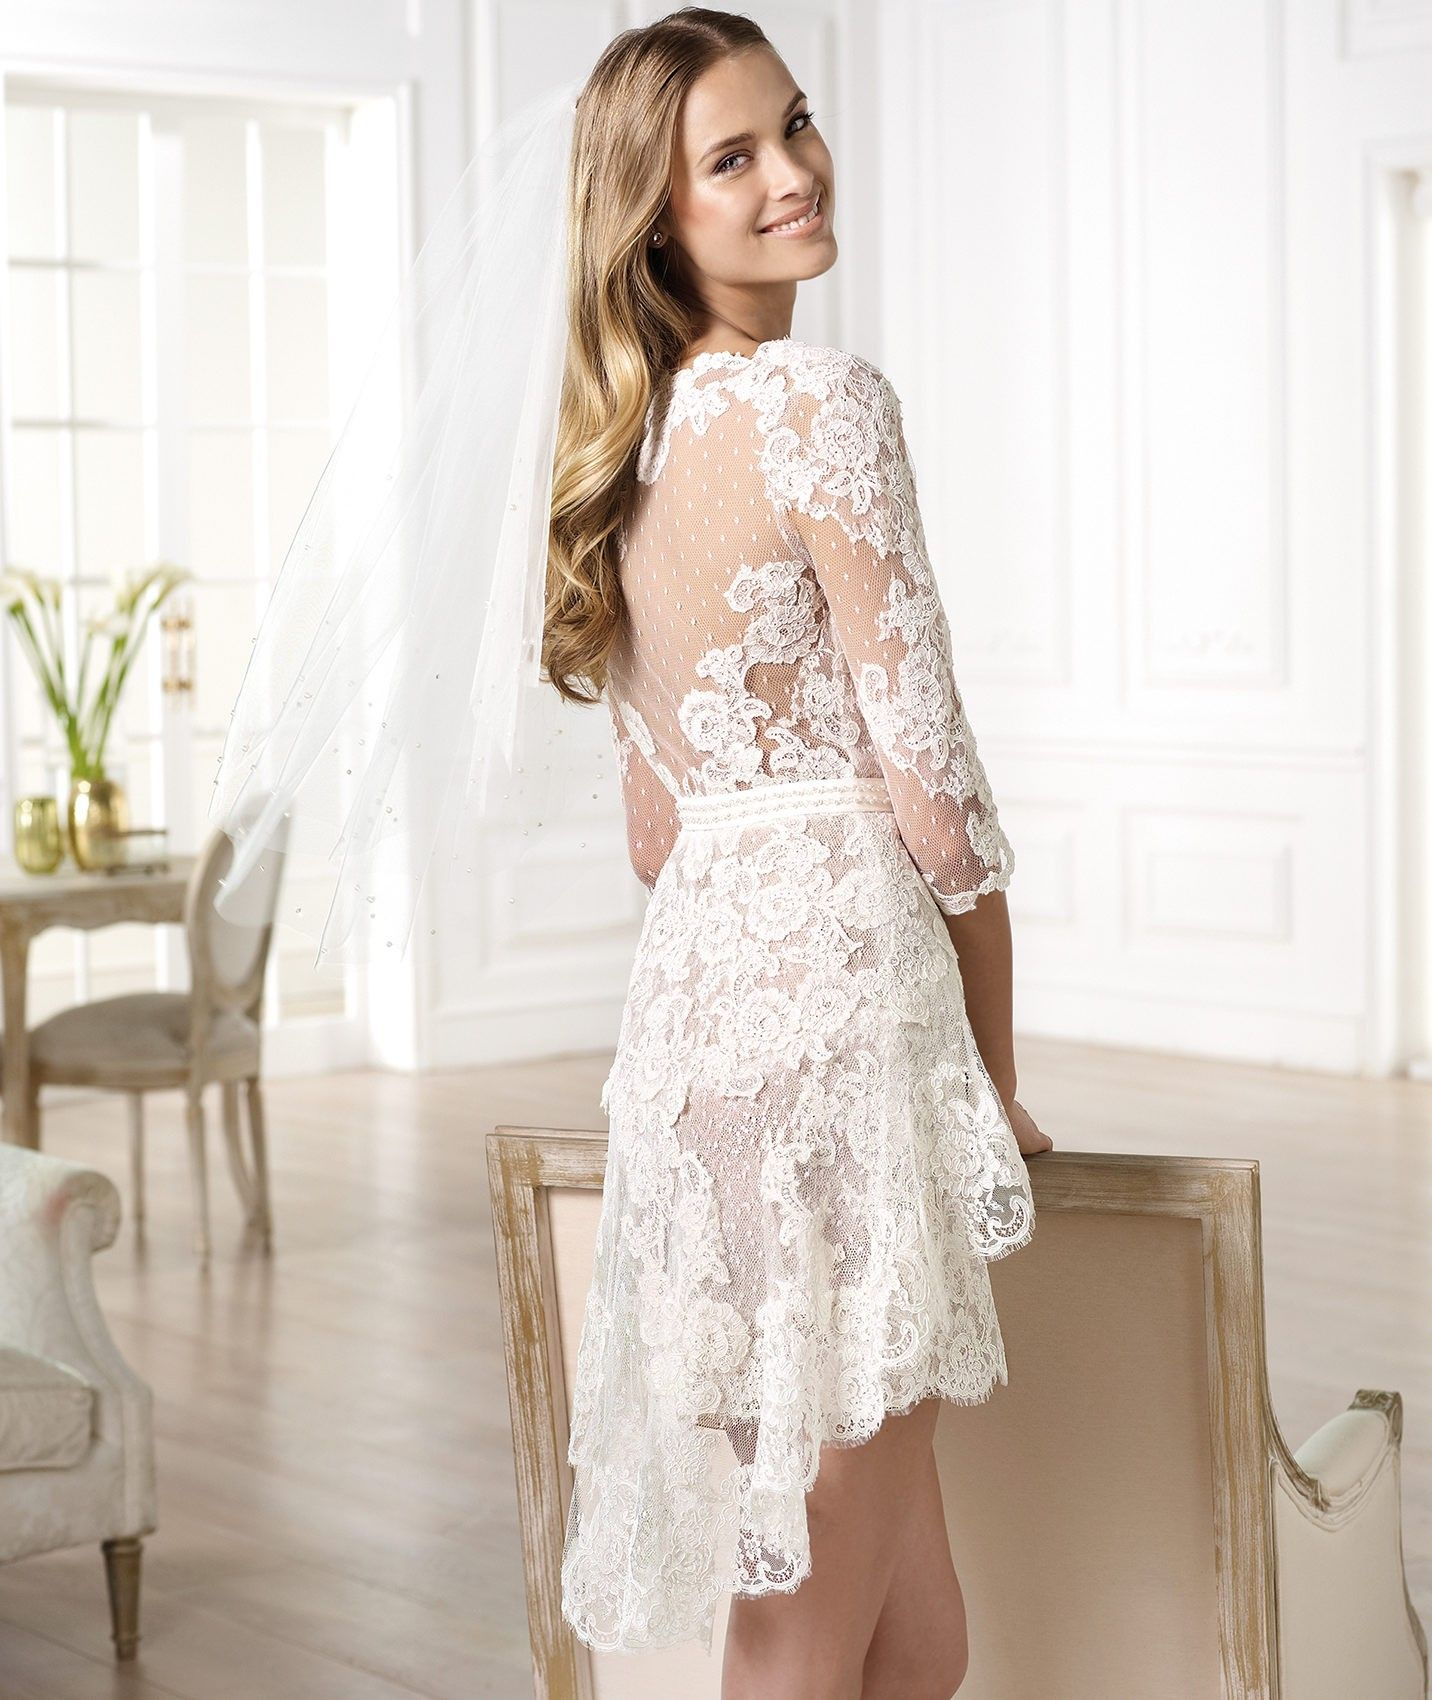 Short Wedding Dresses Make Your Looks More Beautiful Fashdea